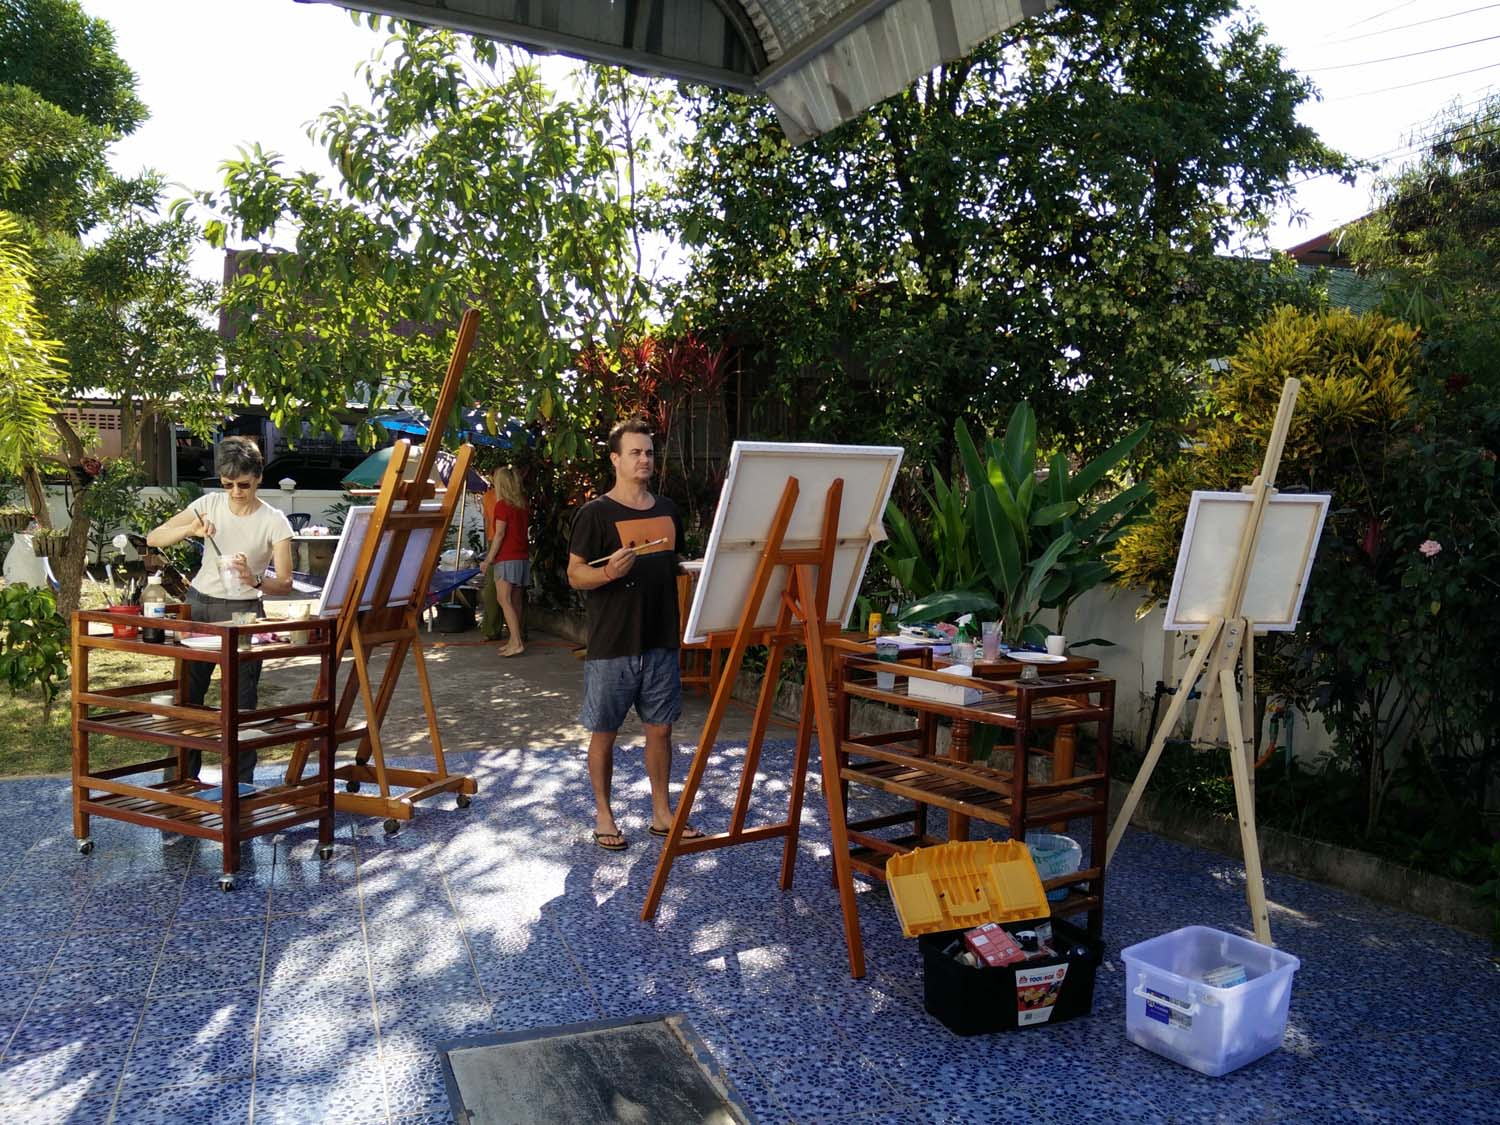 Artist Frances enjoying a painting holiday in Thailand  009.jpg